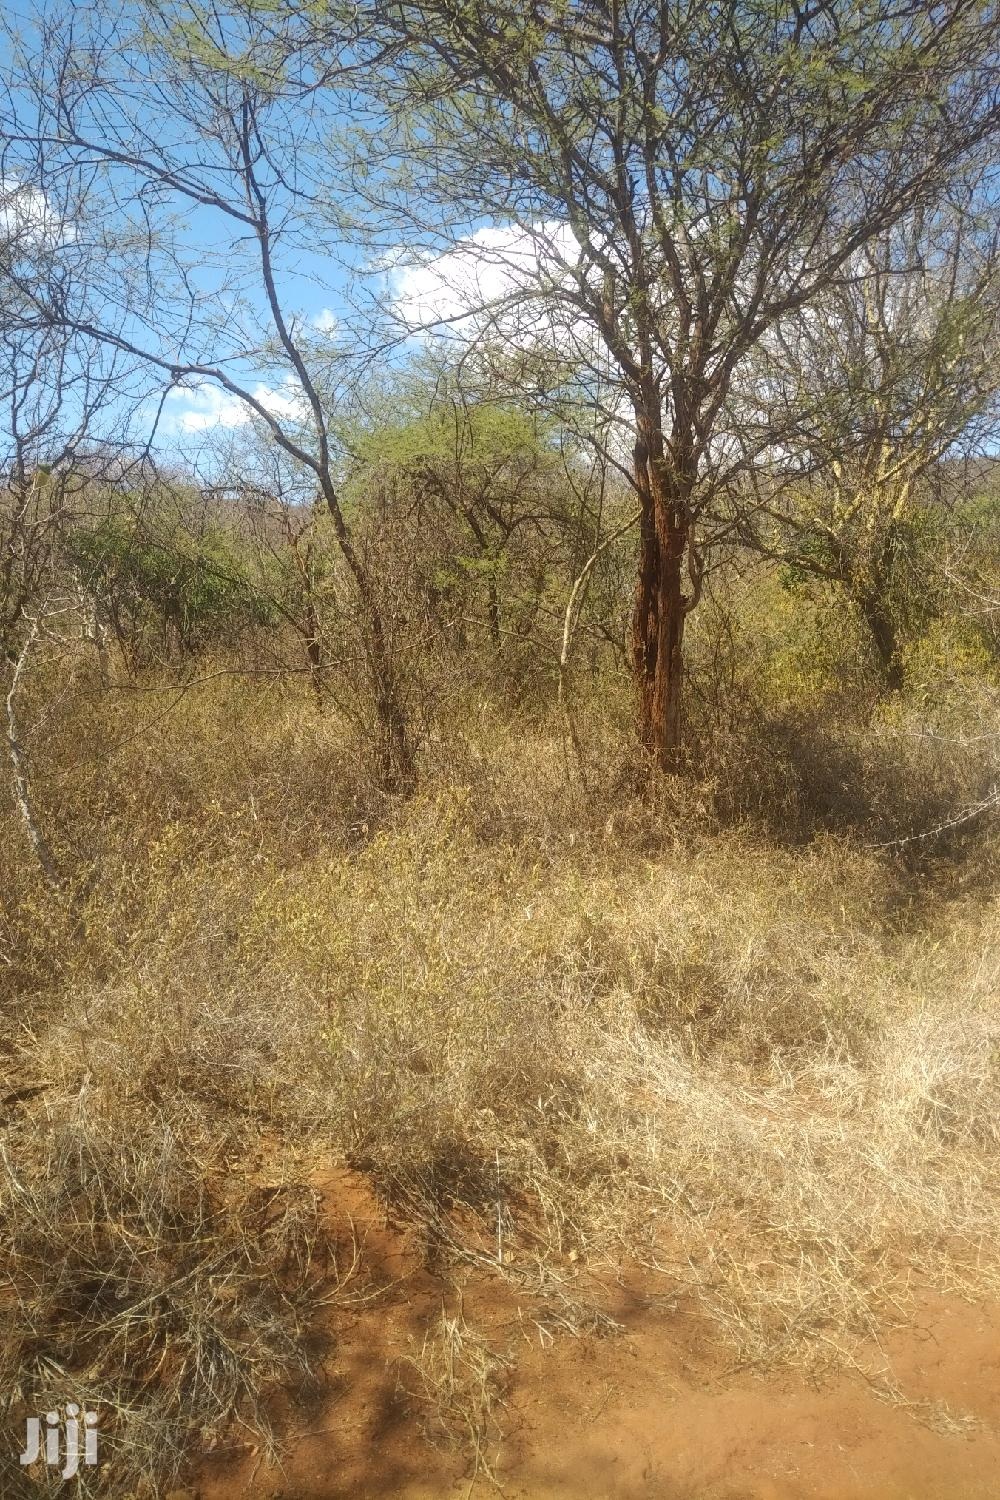 Land on Sale, 5acres Next to the Highway on Sale